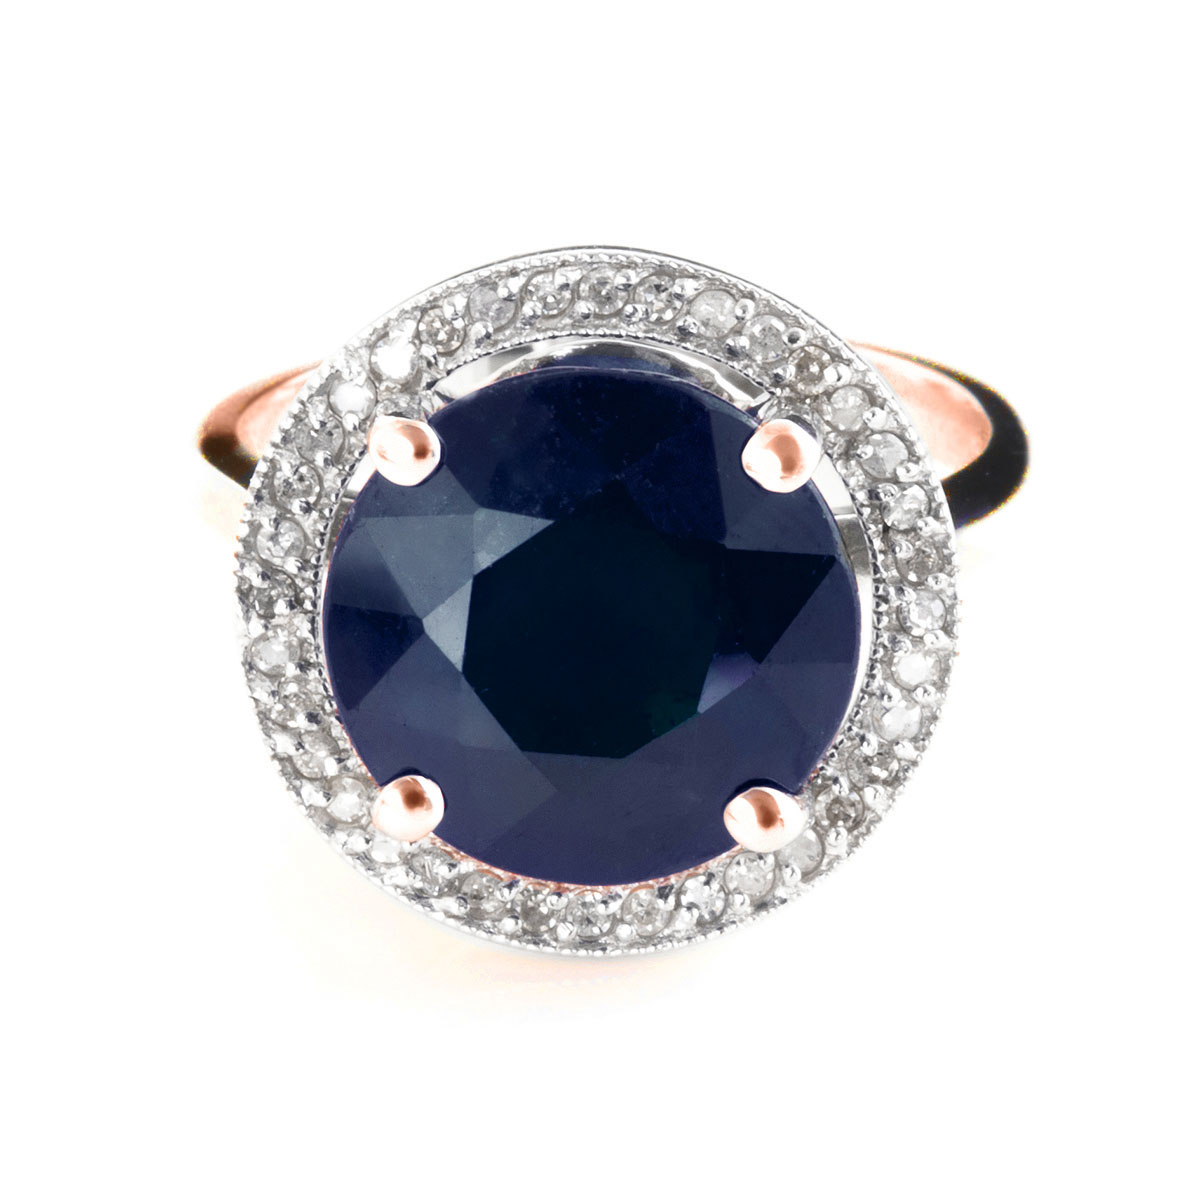 Sapphire & Diamond Halo Ring in 18ct Rose Gold